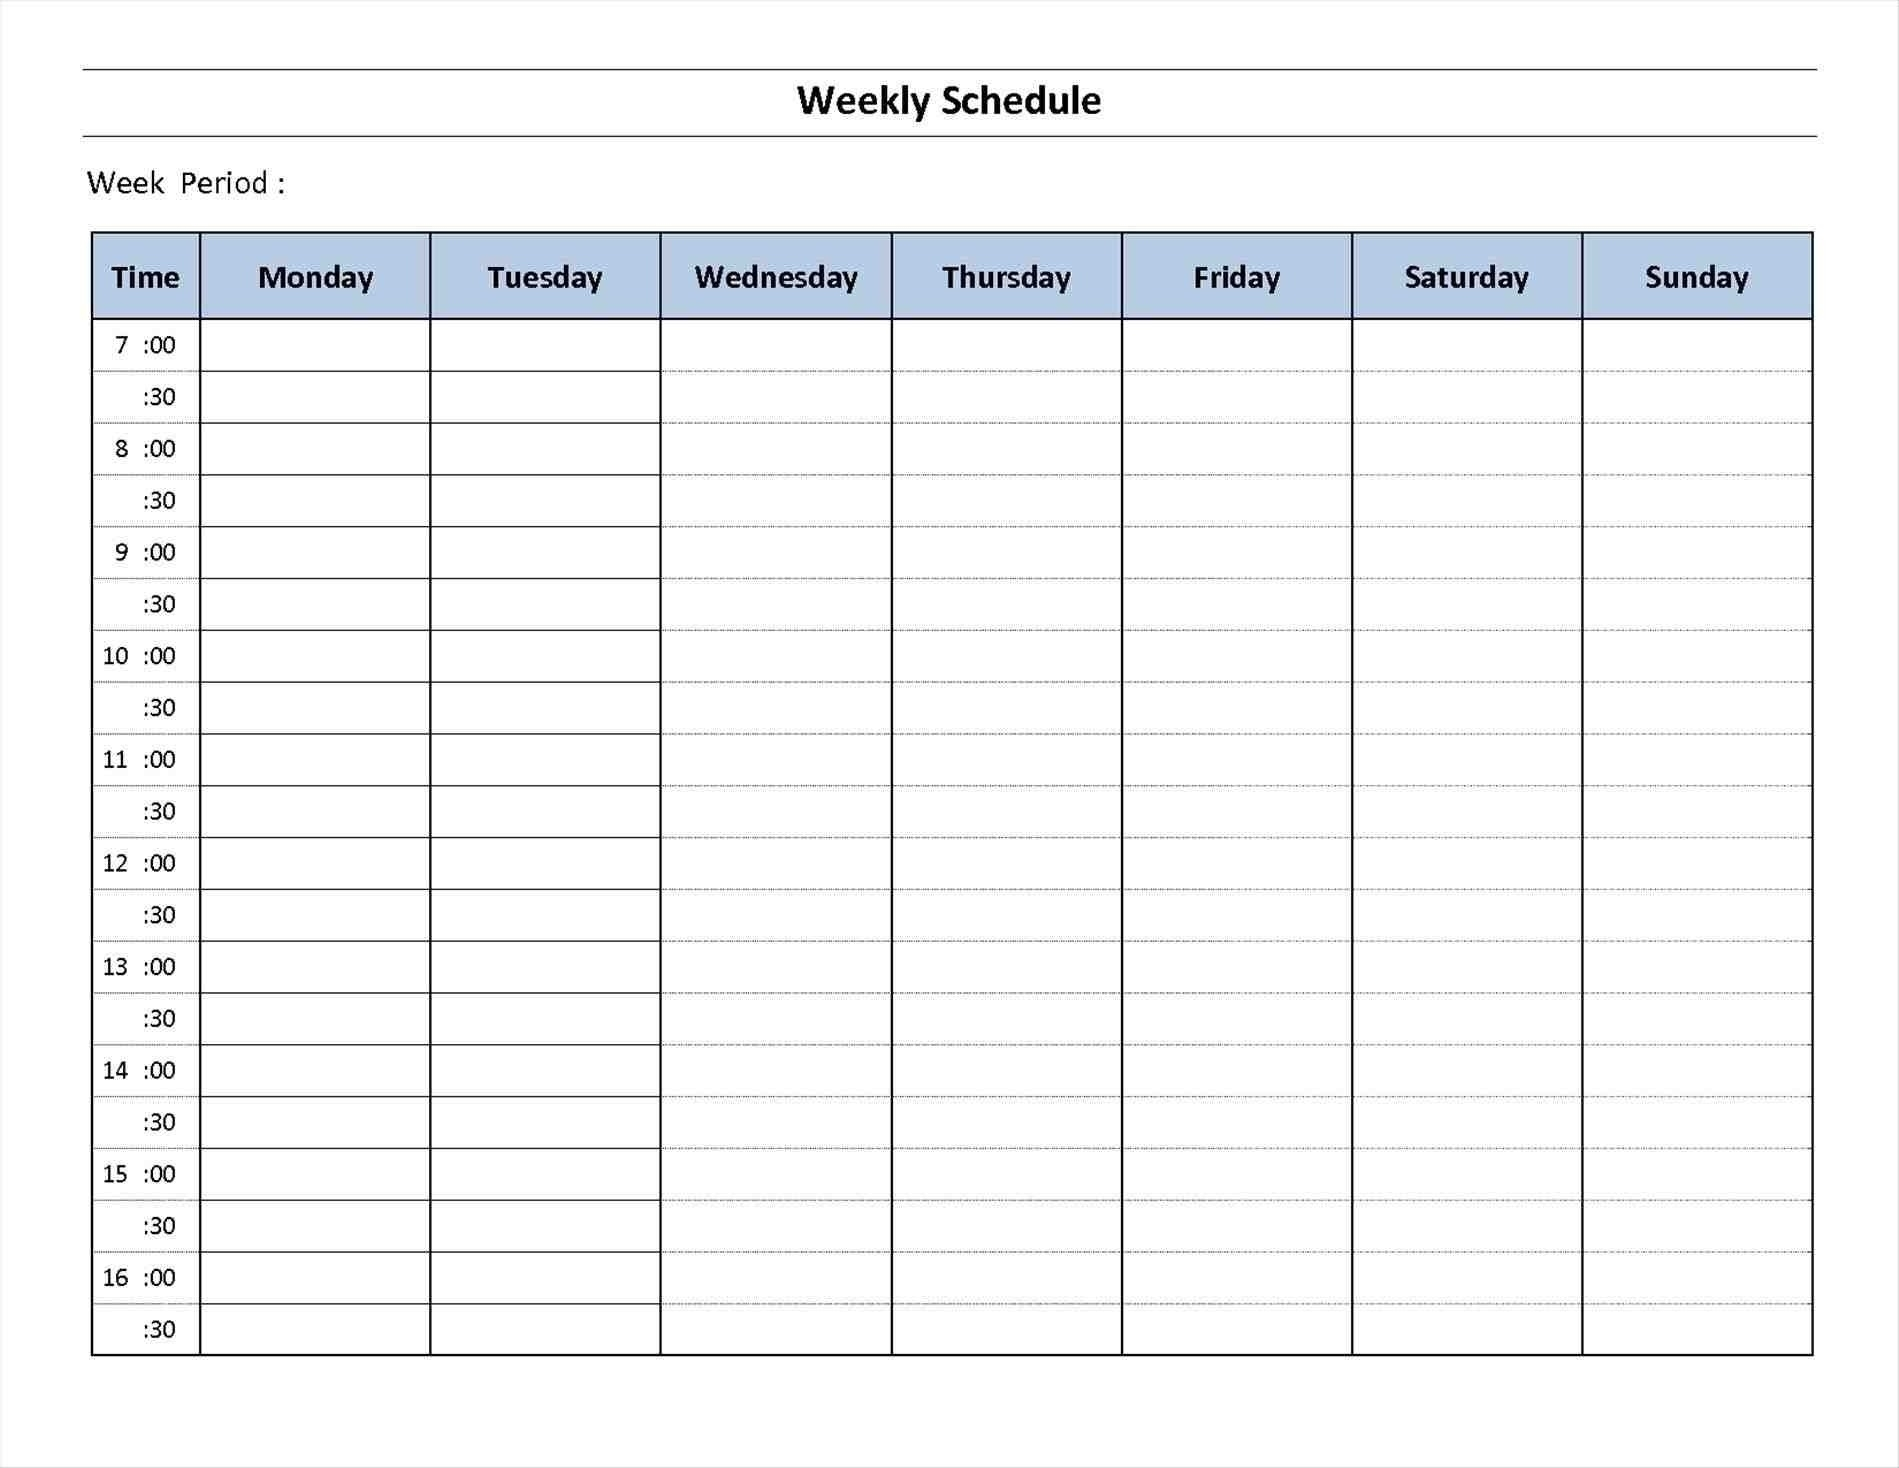 Week Calendar Template Day Schedule | Smorad with regard to 3 Month Planning Calendar Printable